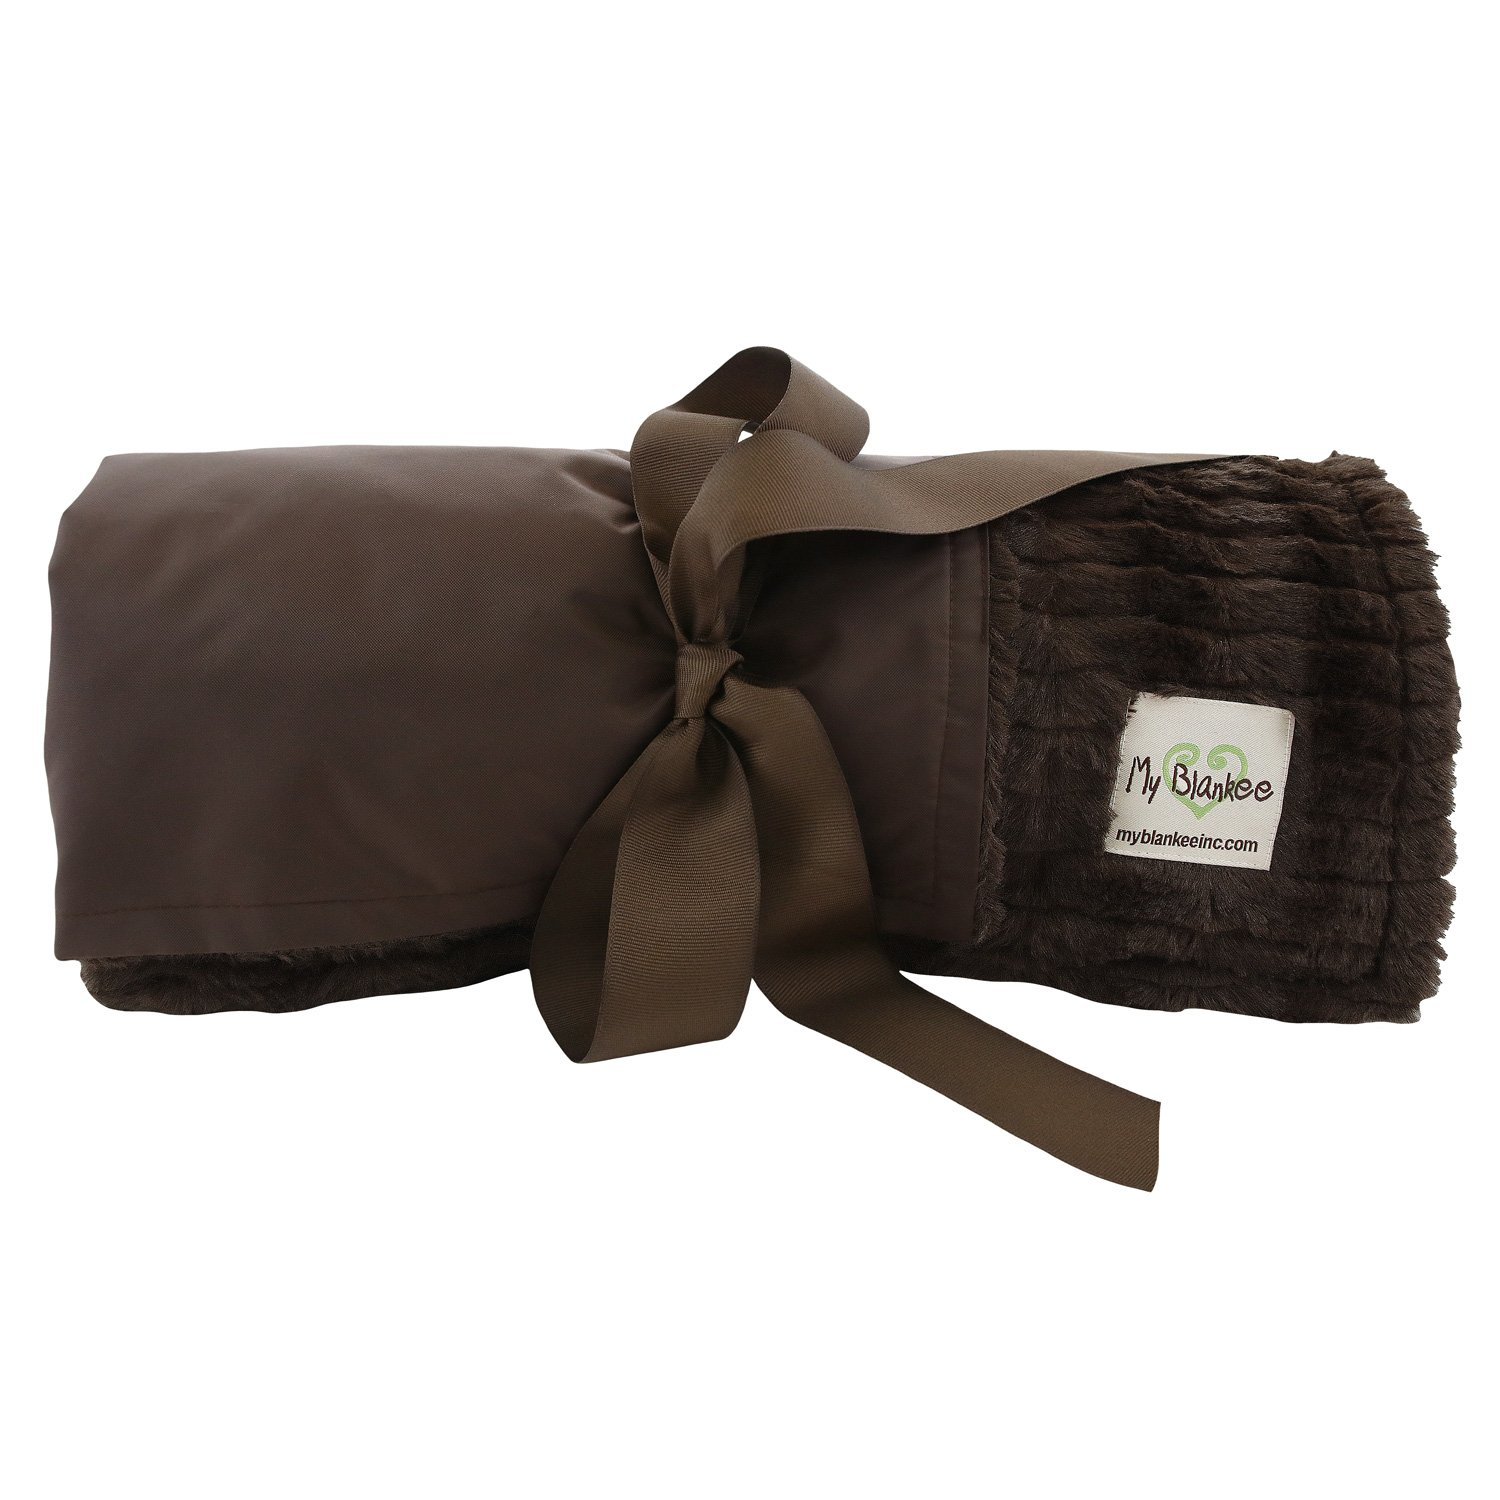 My Blankee Extra Large Picnic & Outdoor Blanket Warm and Soft Luxe Stipe with Waterproof Backing, Brown, 59'' X 85''